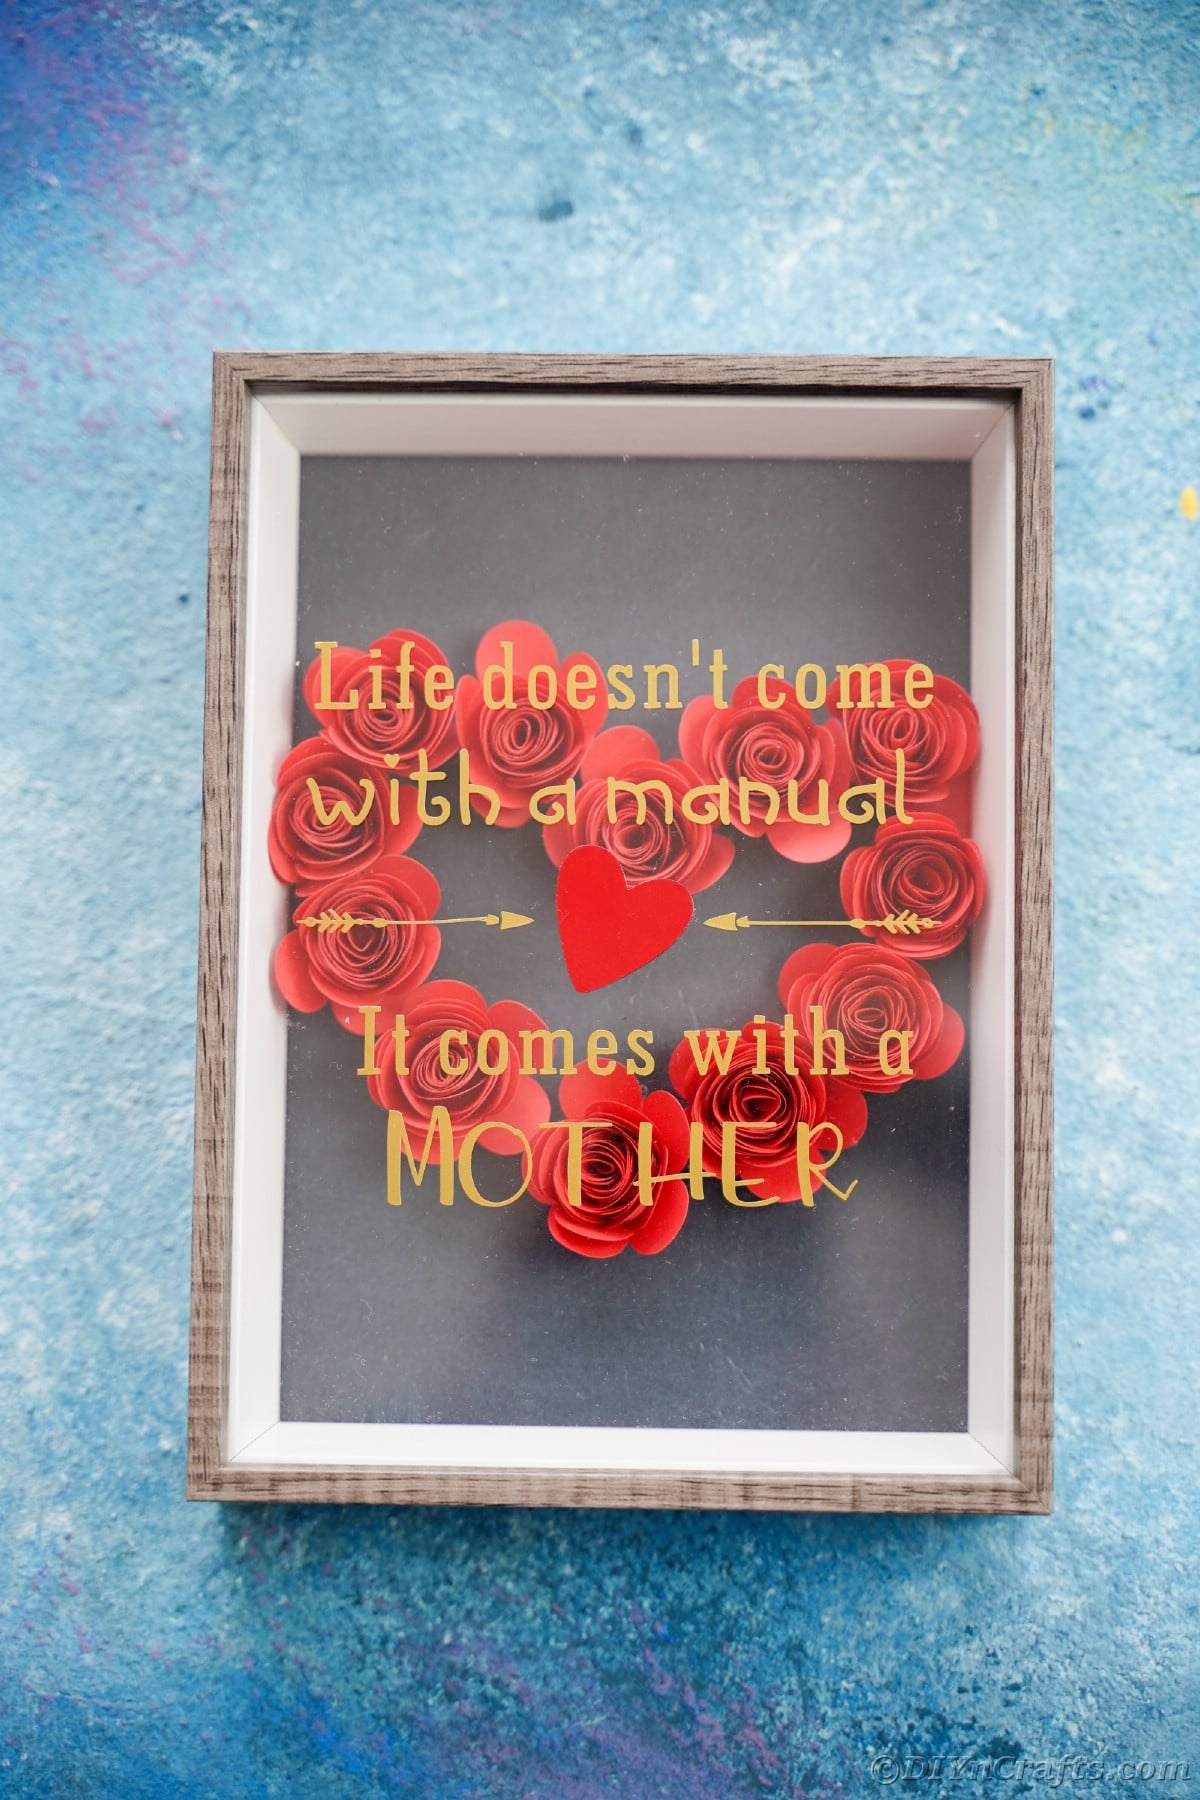 Black mother's day shadowbox on blue background